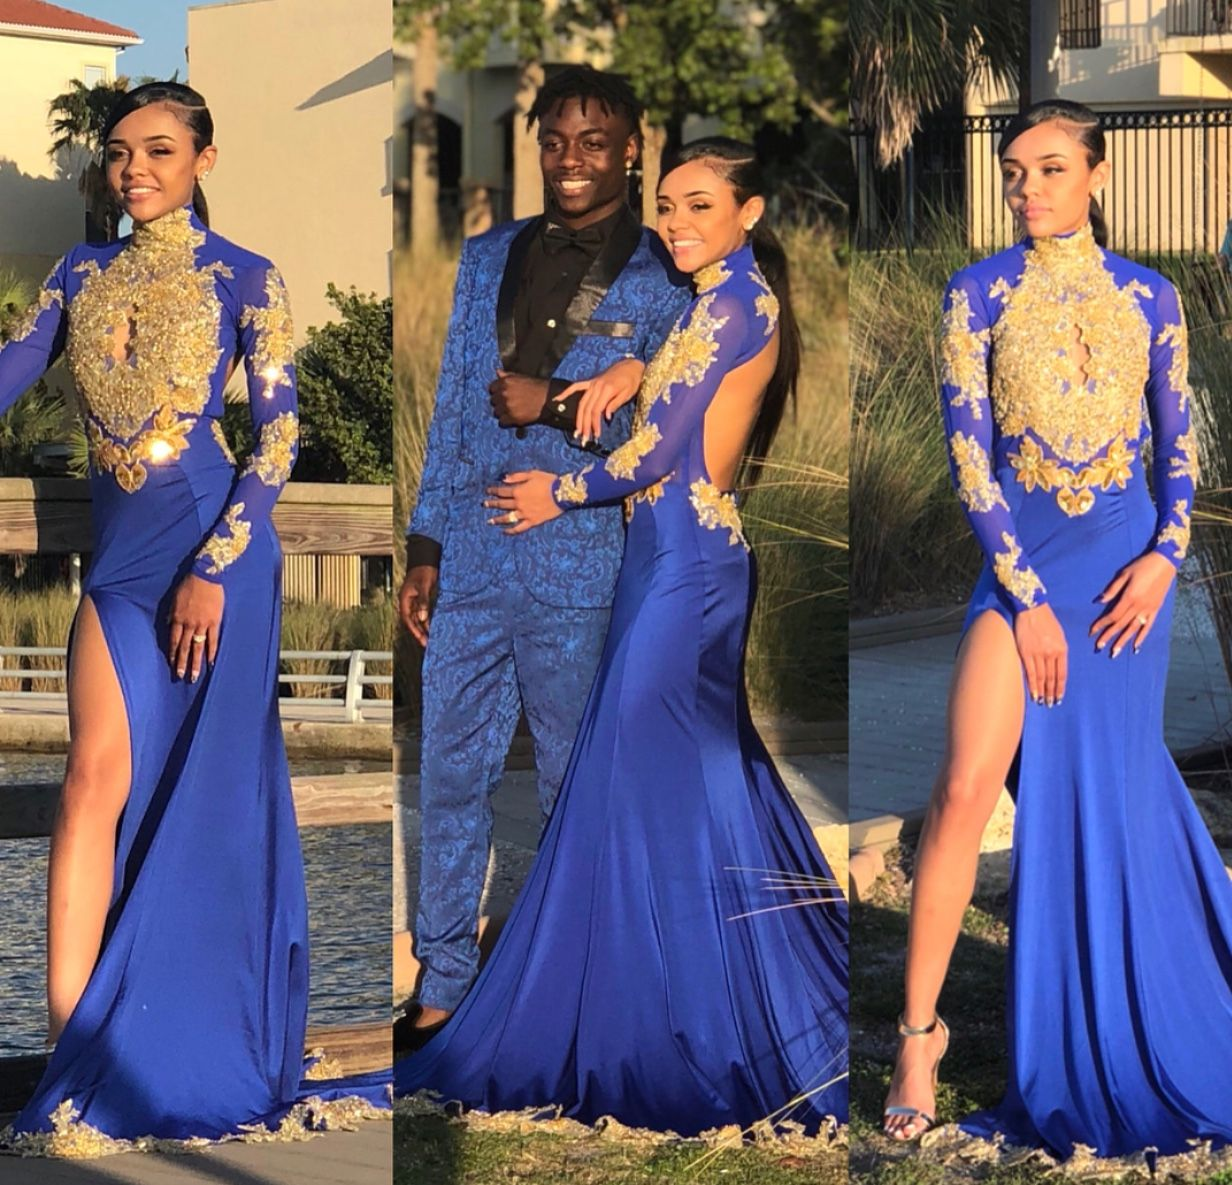 Pin by alexis chambers on prom pinterest prom prom ideas and